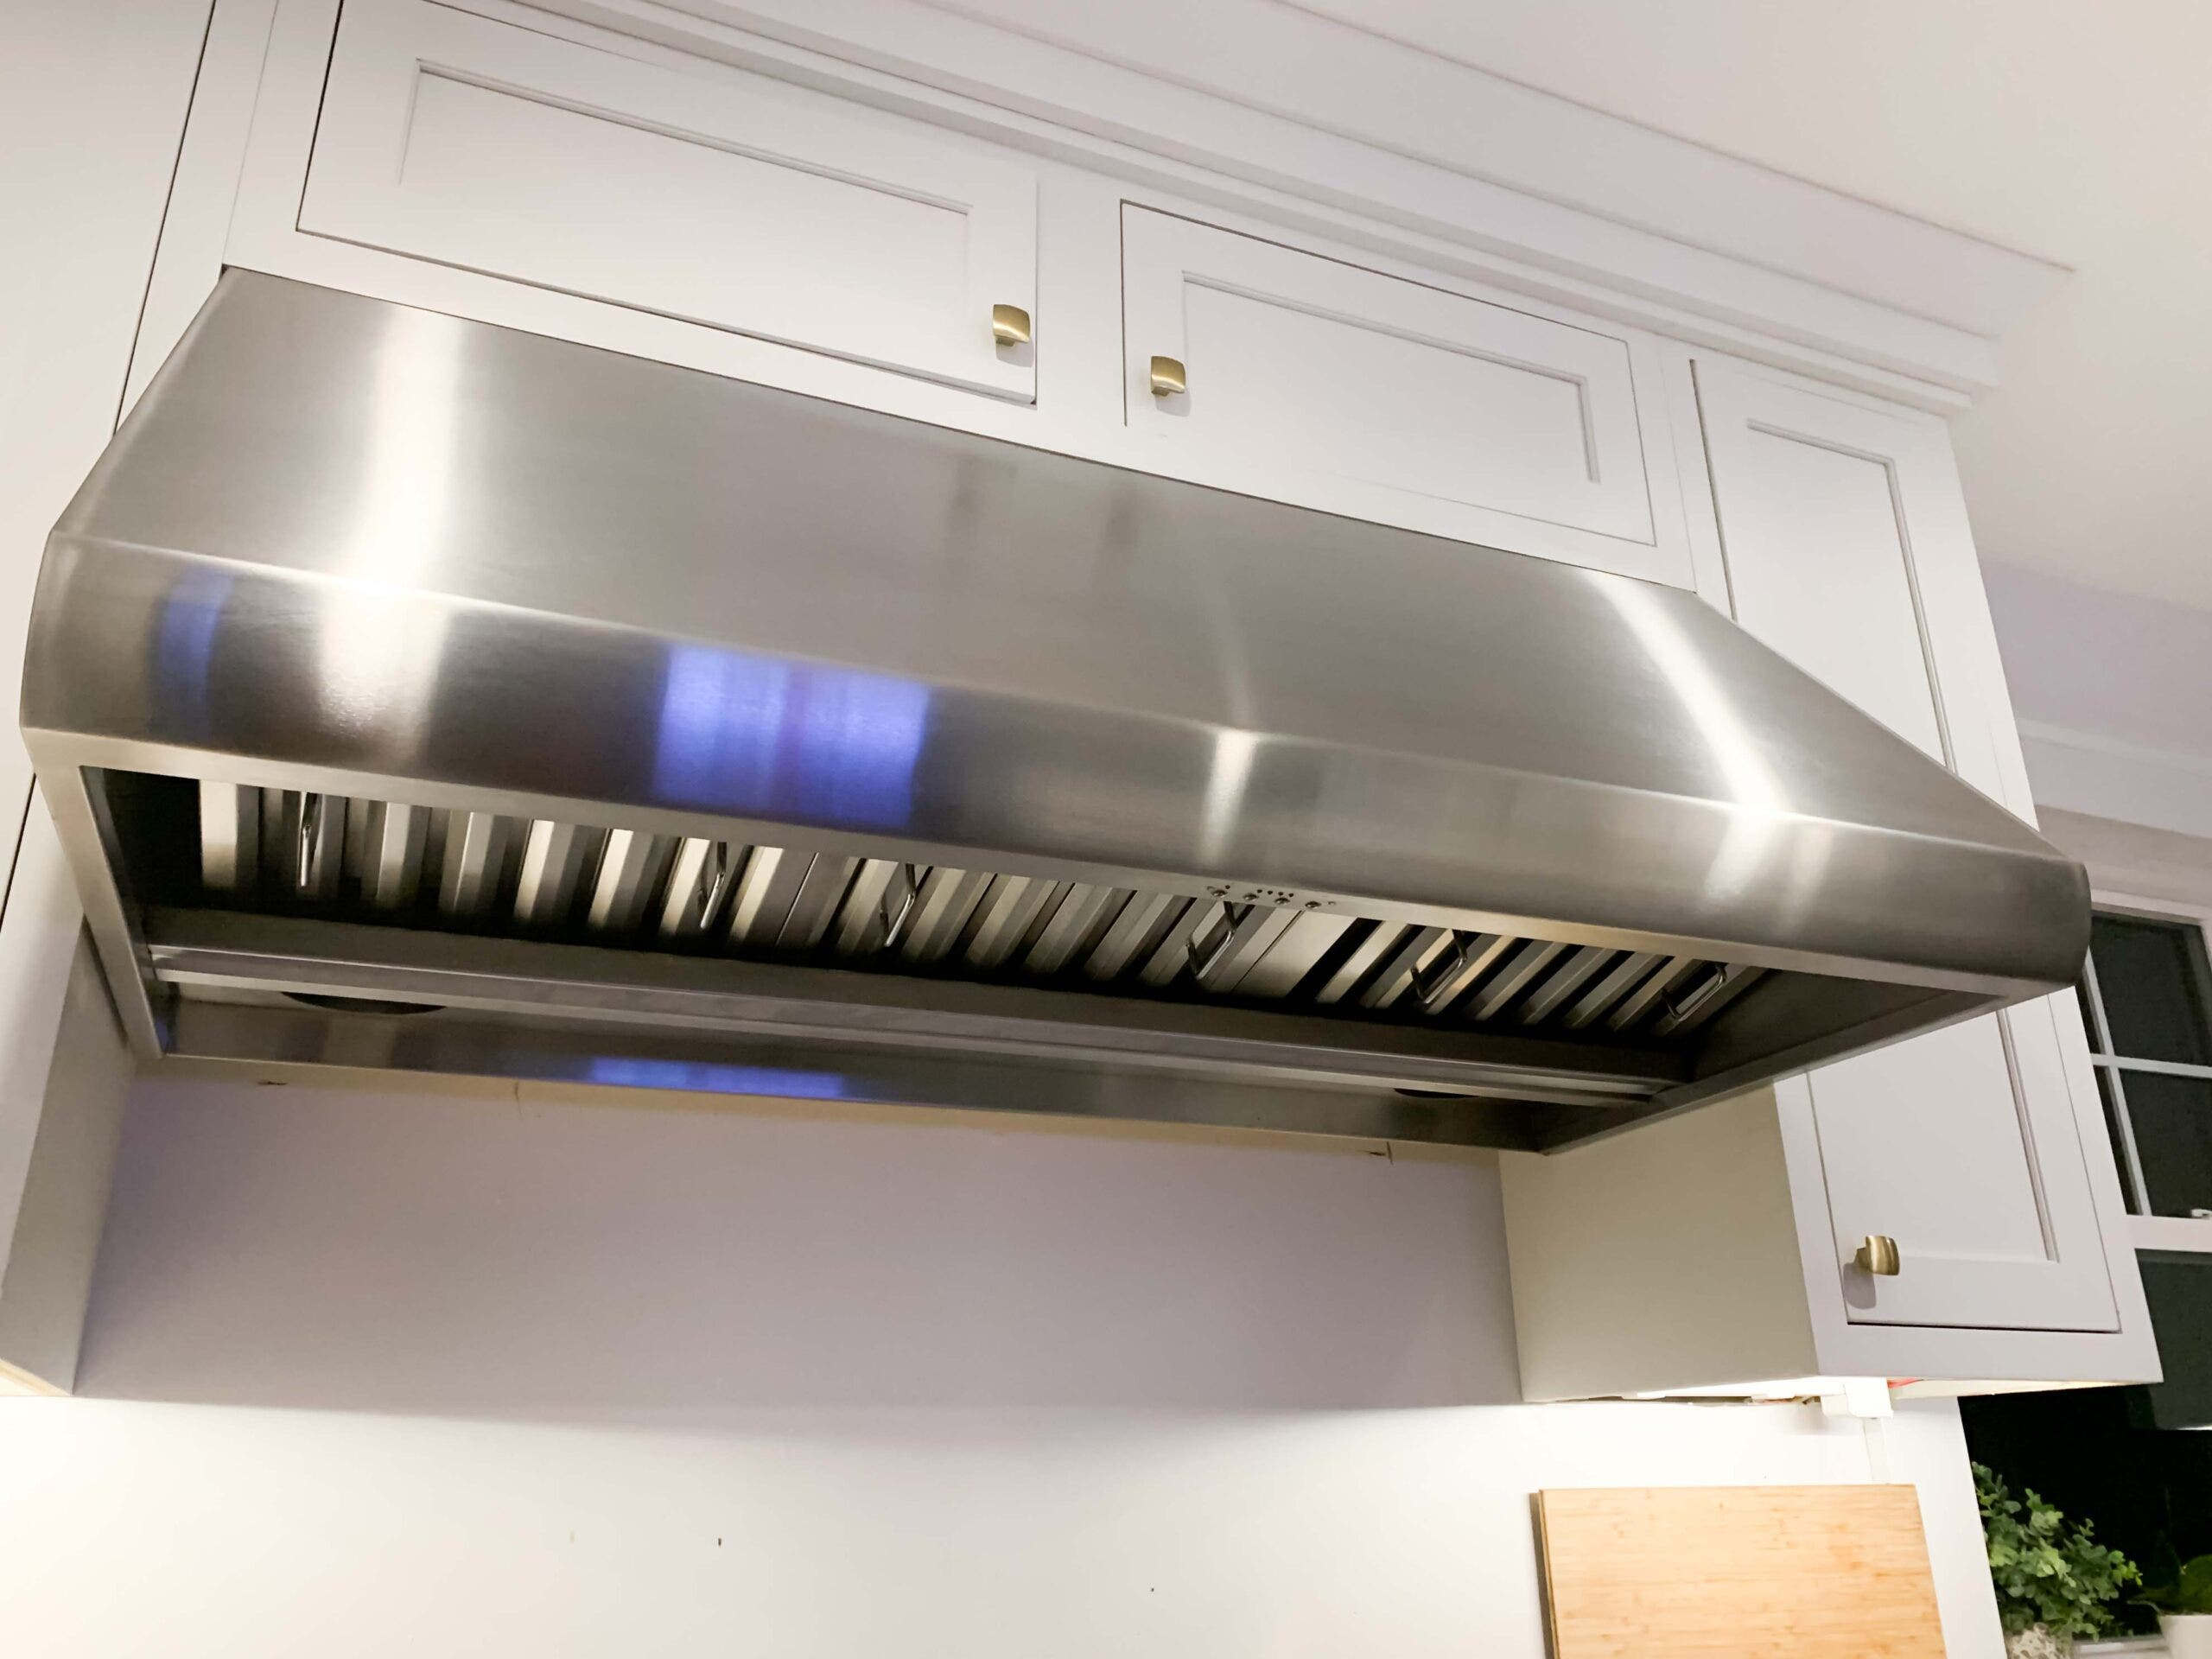 What Is A Convertible Range Hood And Where Can I Buy One